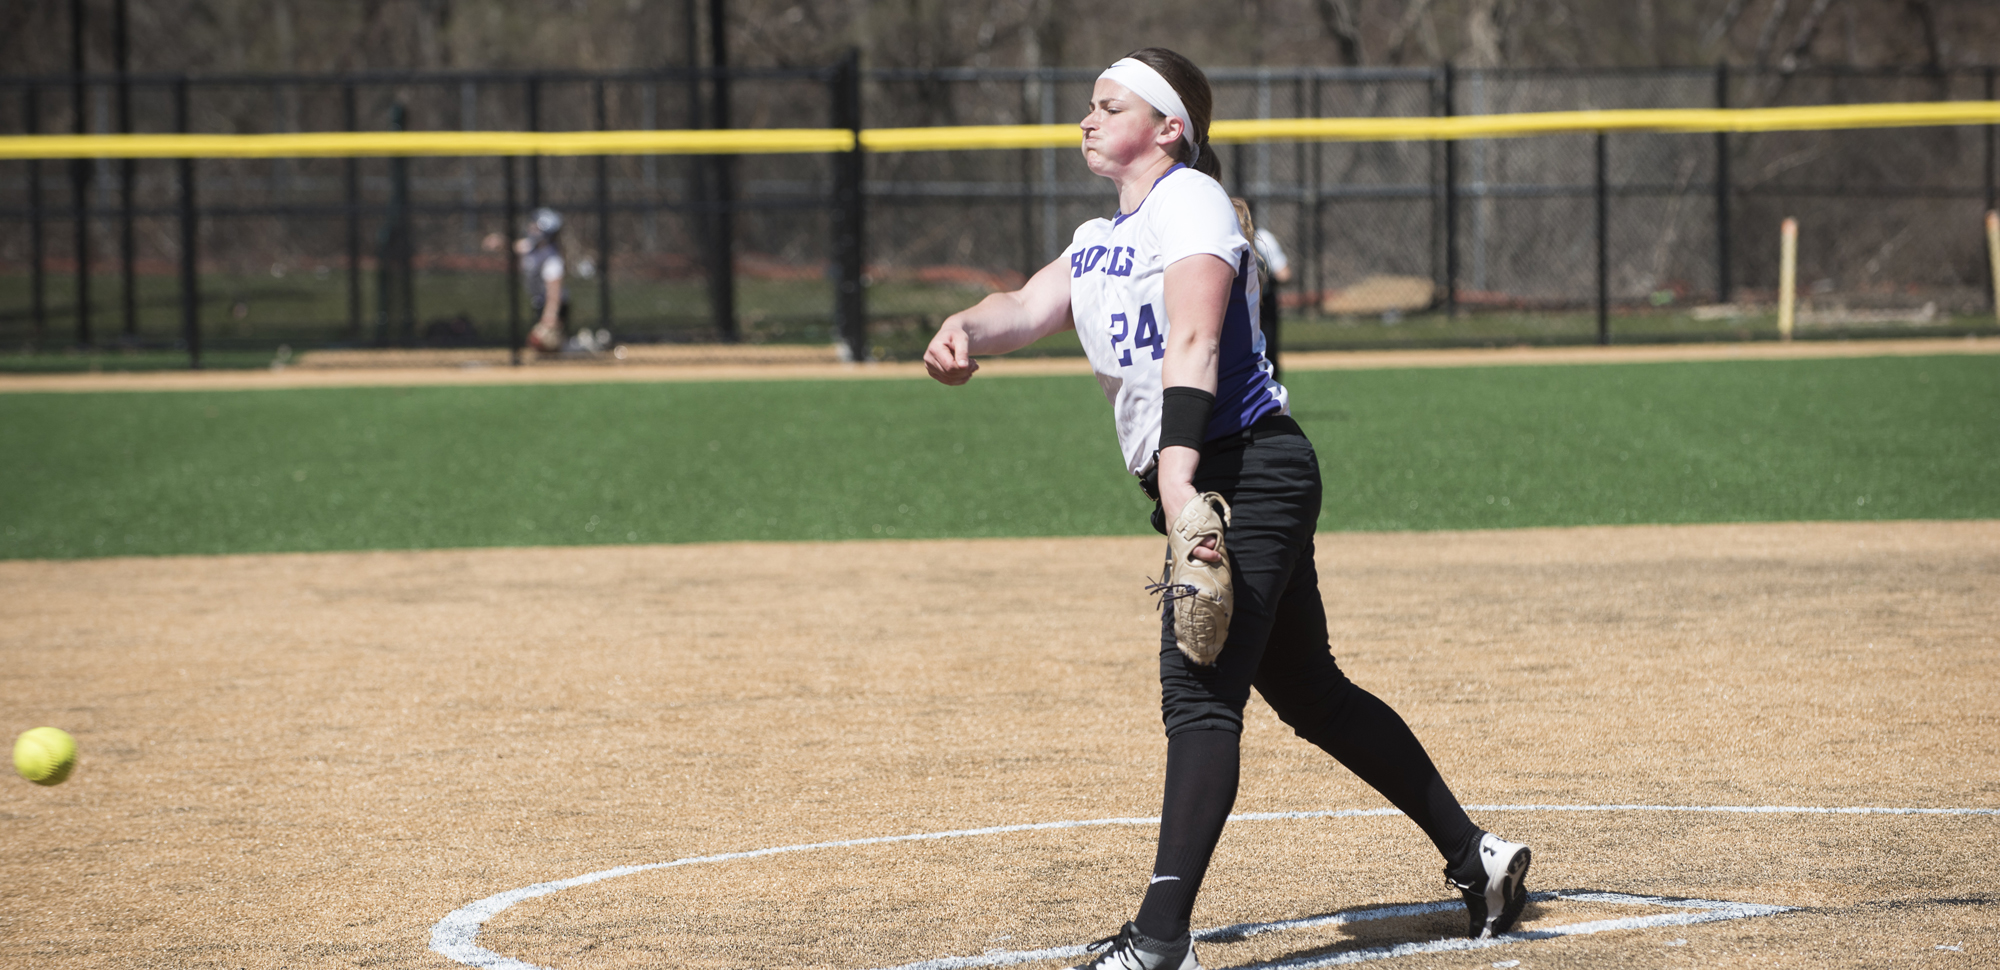 Sophomore Jennifer Sweeney tossed a one-hit, complete game on Saturday against Washington & Jefferson to help the Royals take a 5-1 win on Saturday.